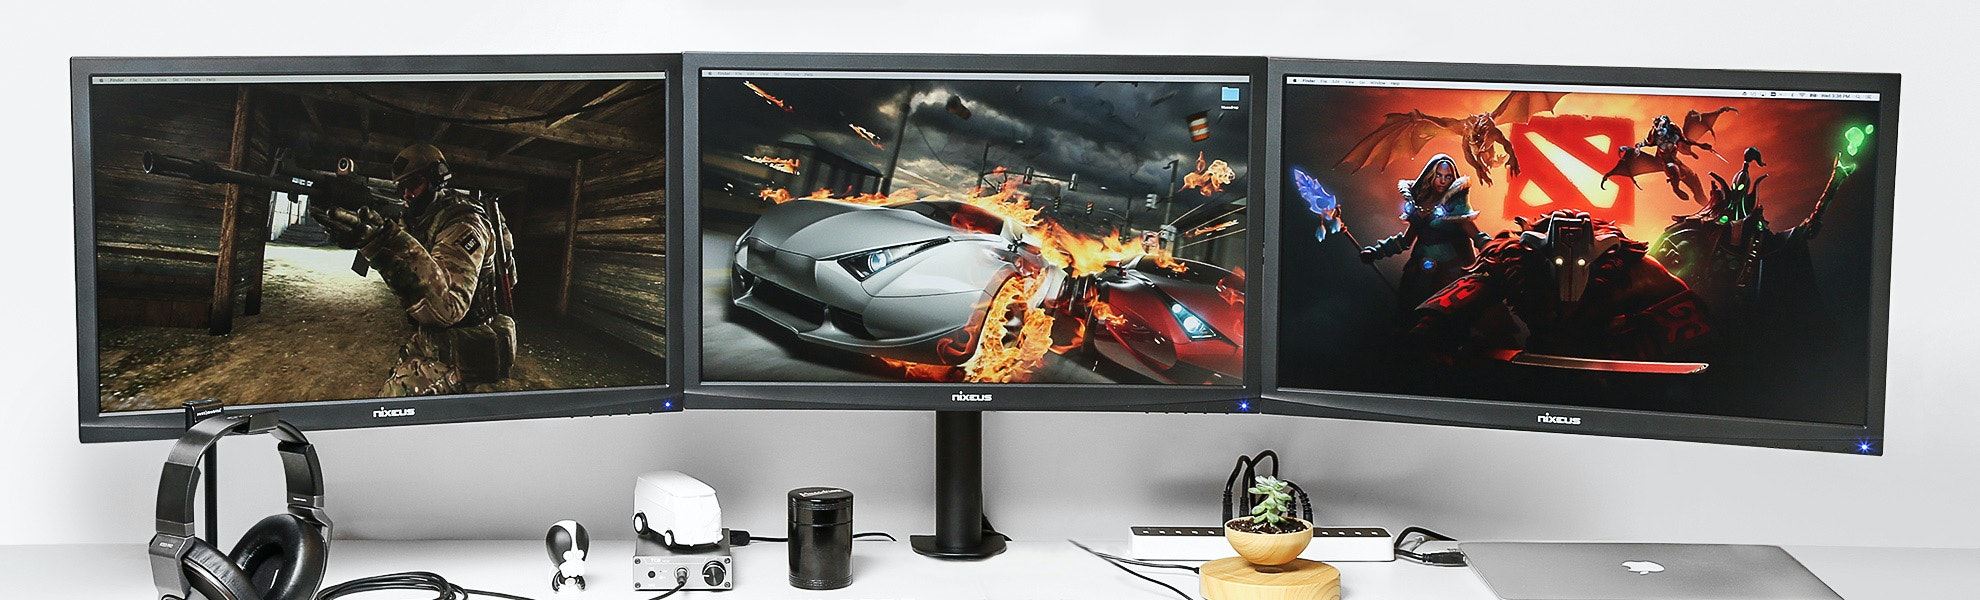 Vivo Dual|Triple|Quad LCD Heavy Duty Desk Mounts